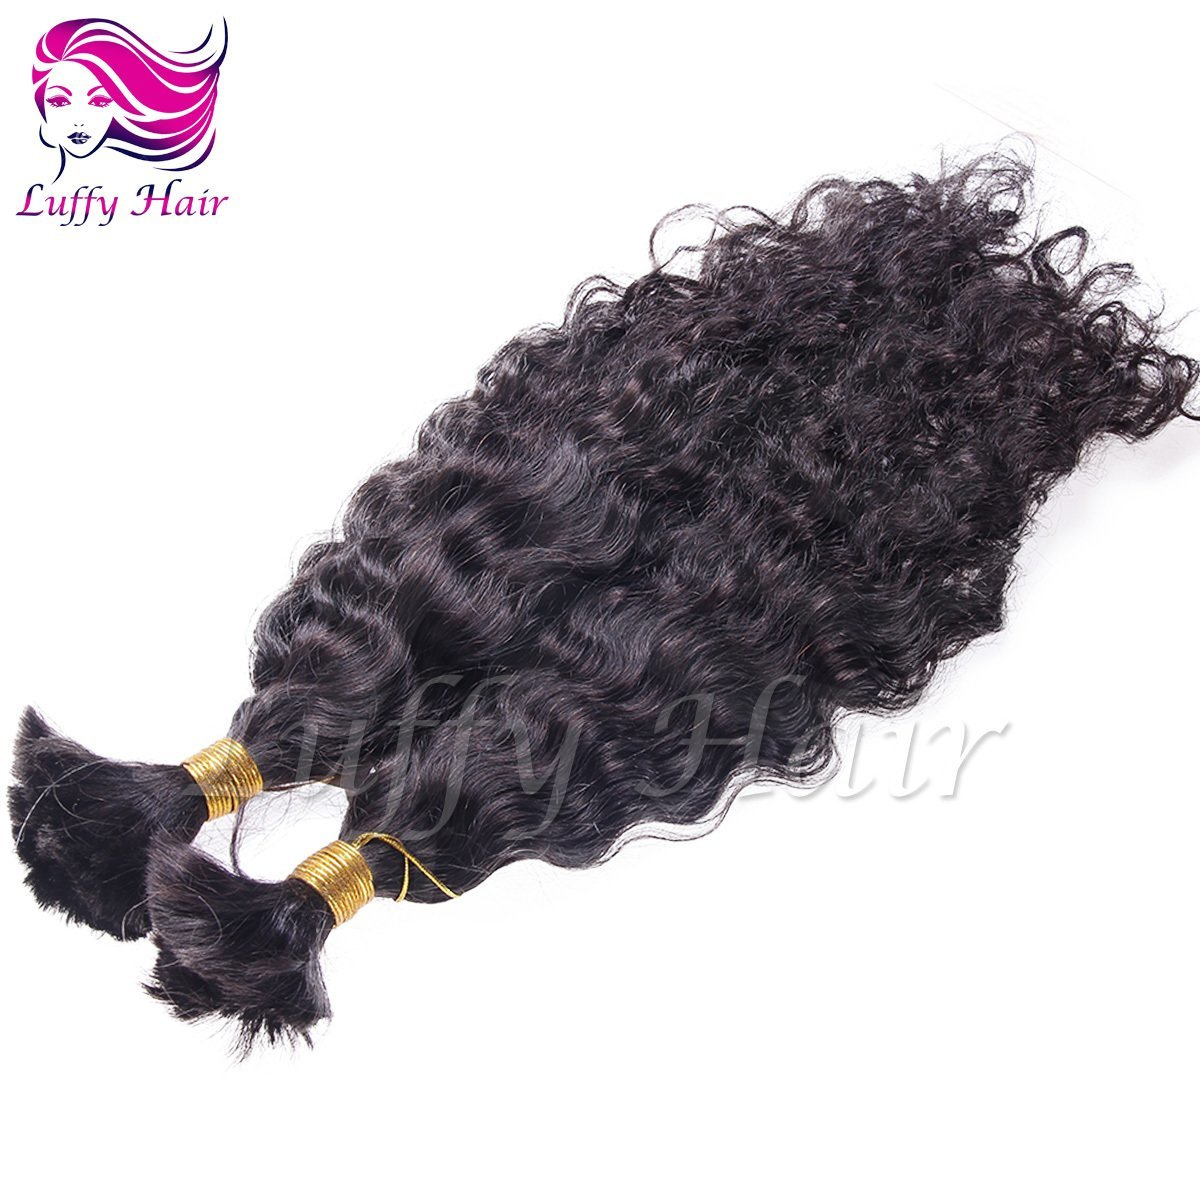 8A Virgin Human Hair Natural Wave Braiding Hair Bulk - KBL004